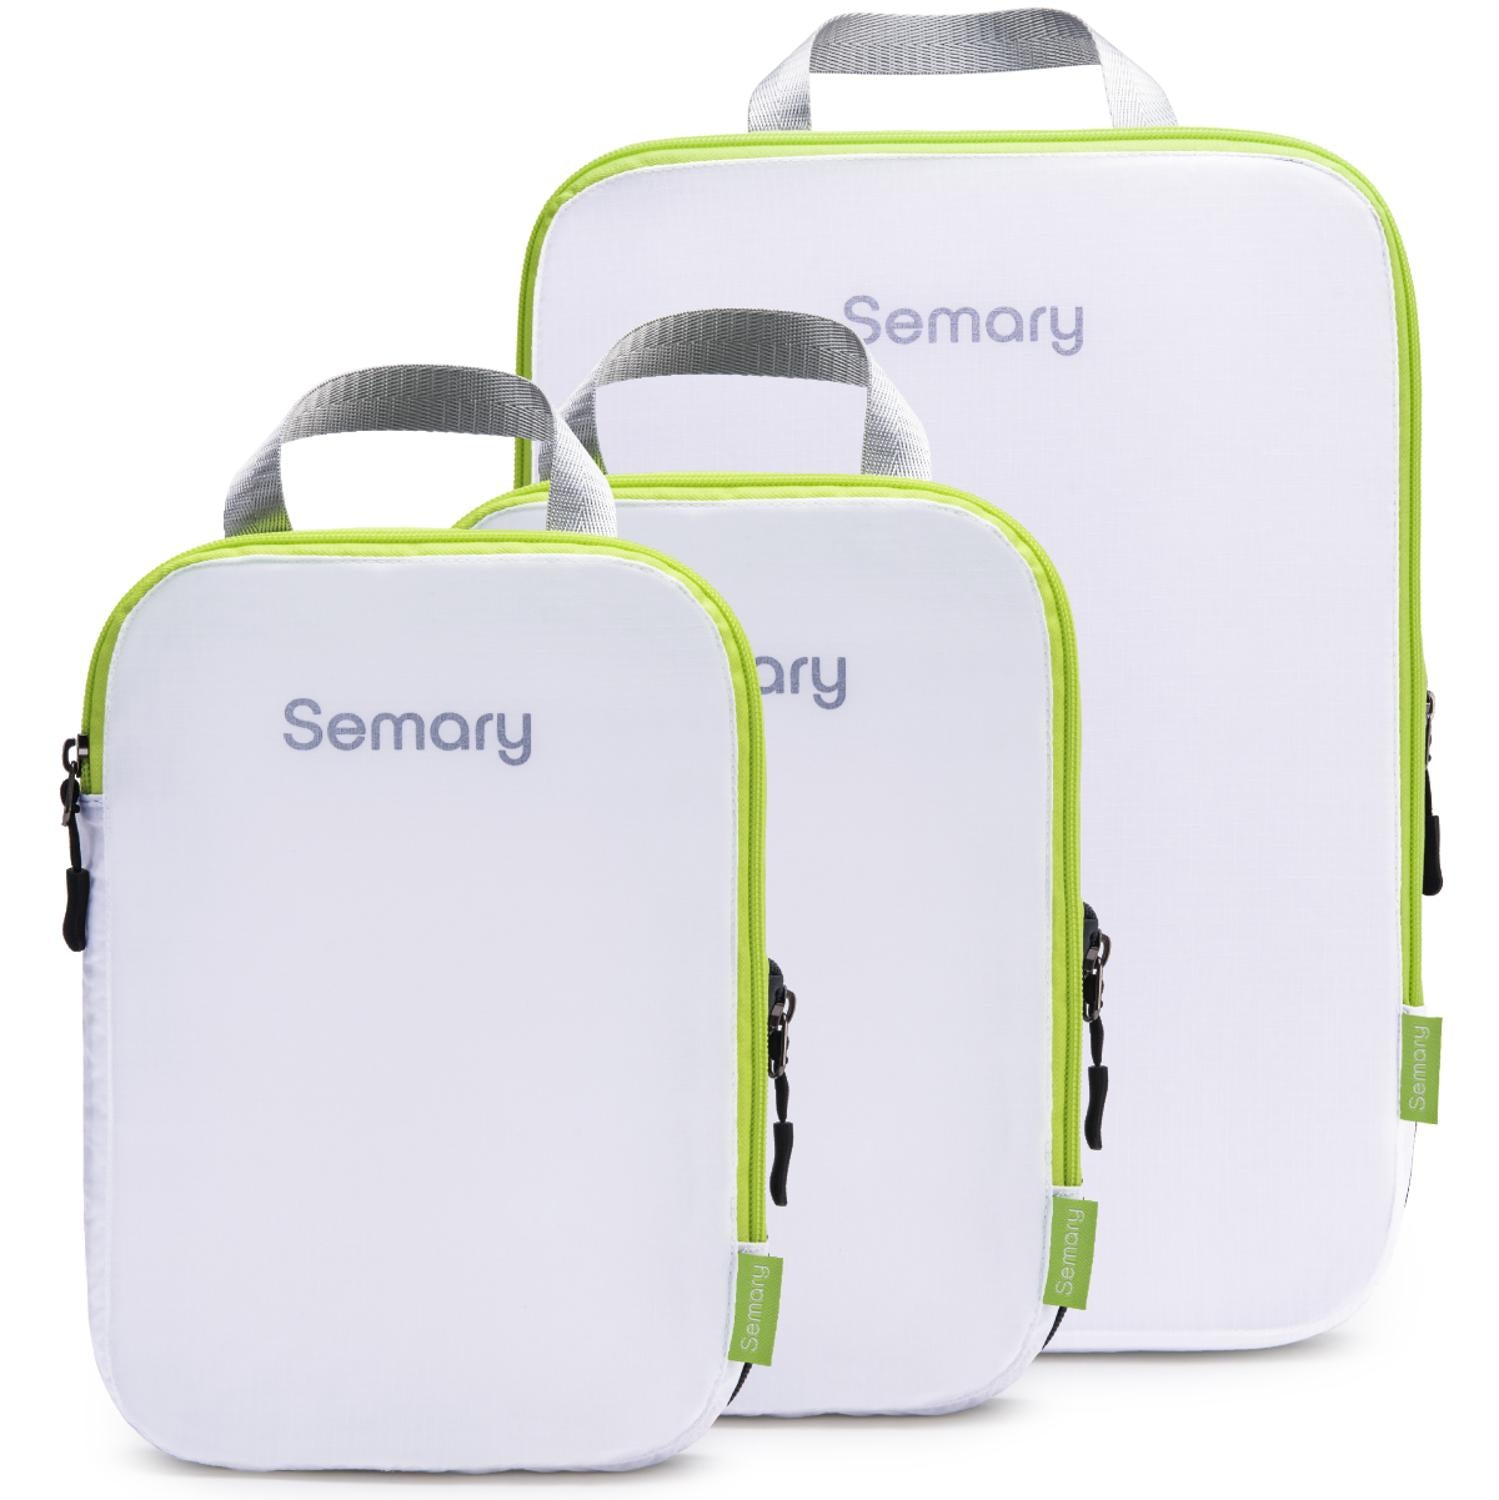 Compression Packing Cubes 3 Set Travel Organizer Accessories for Carryon Luggage Suitcase & Backpack by Semary